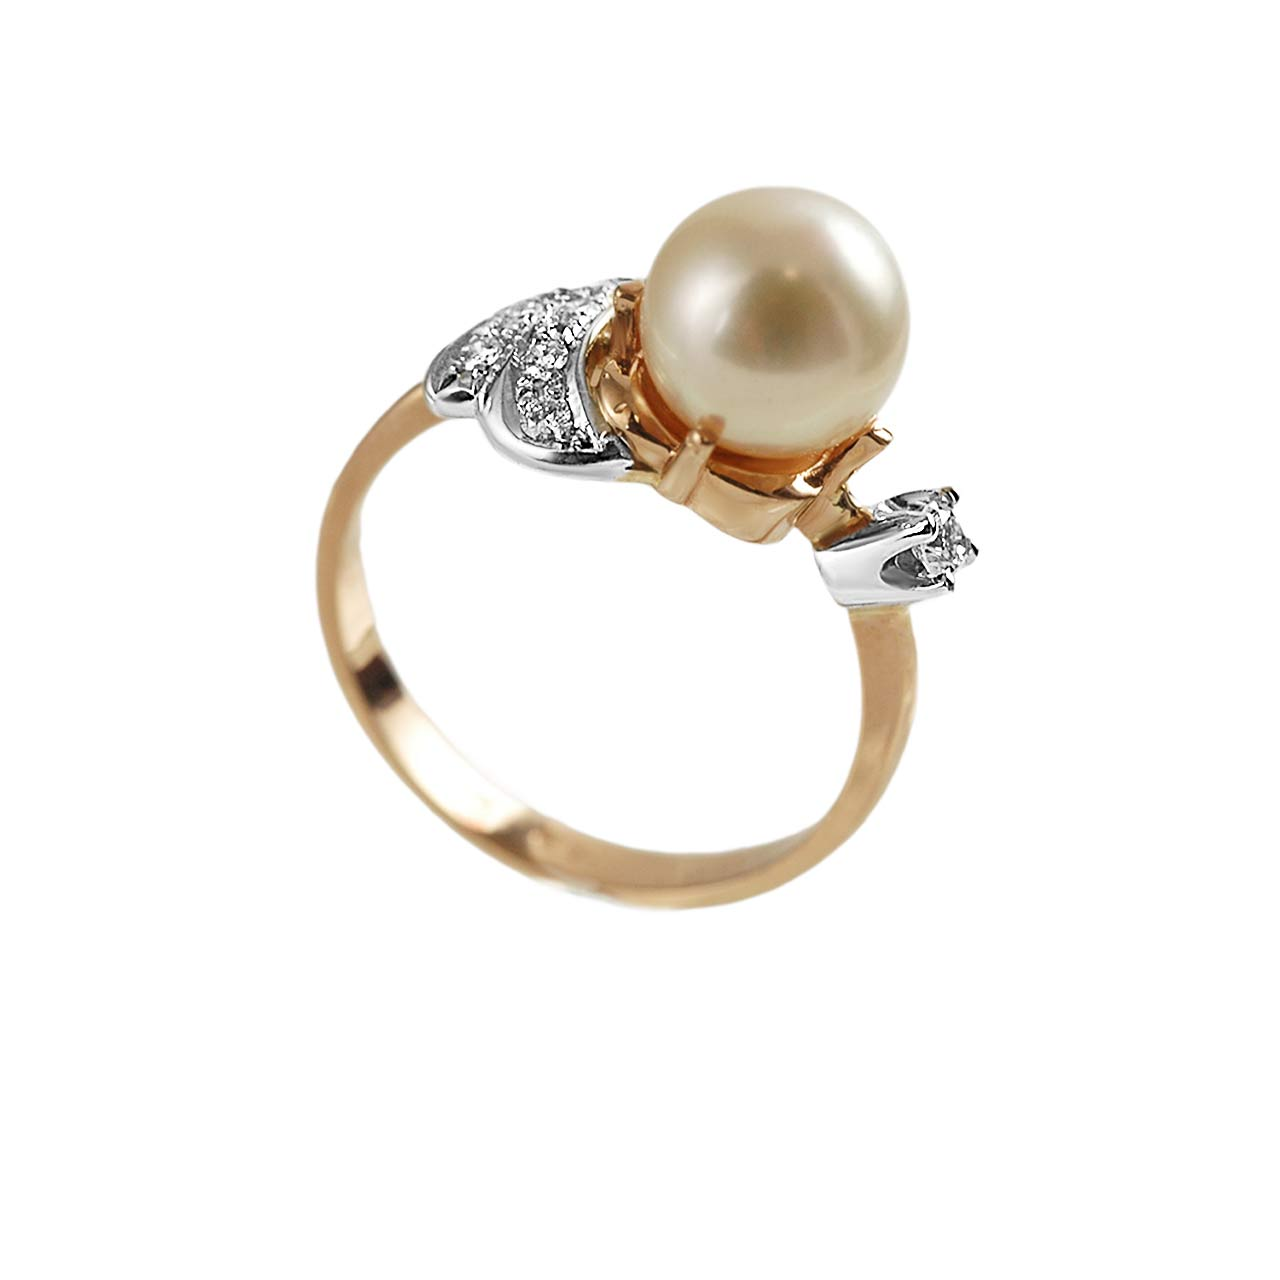 Art Deco pearl and diamond ring 2